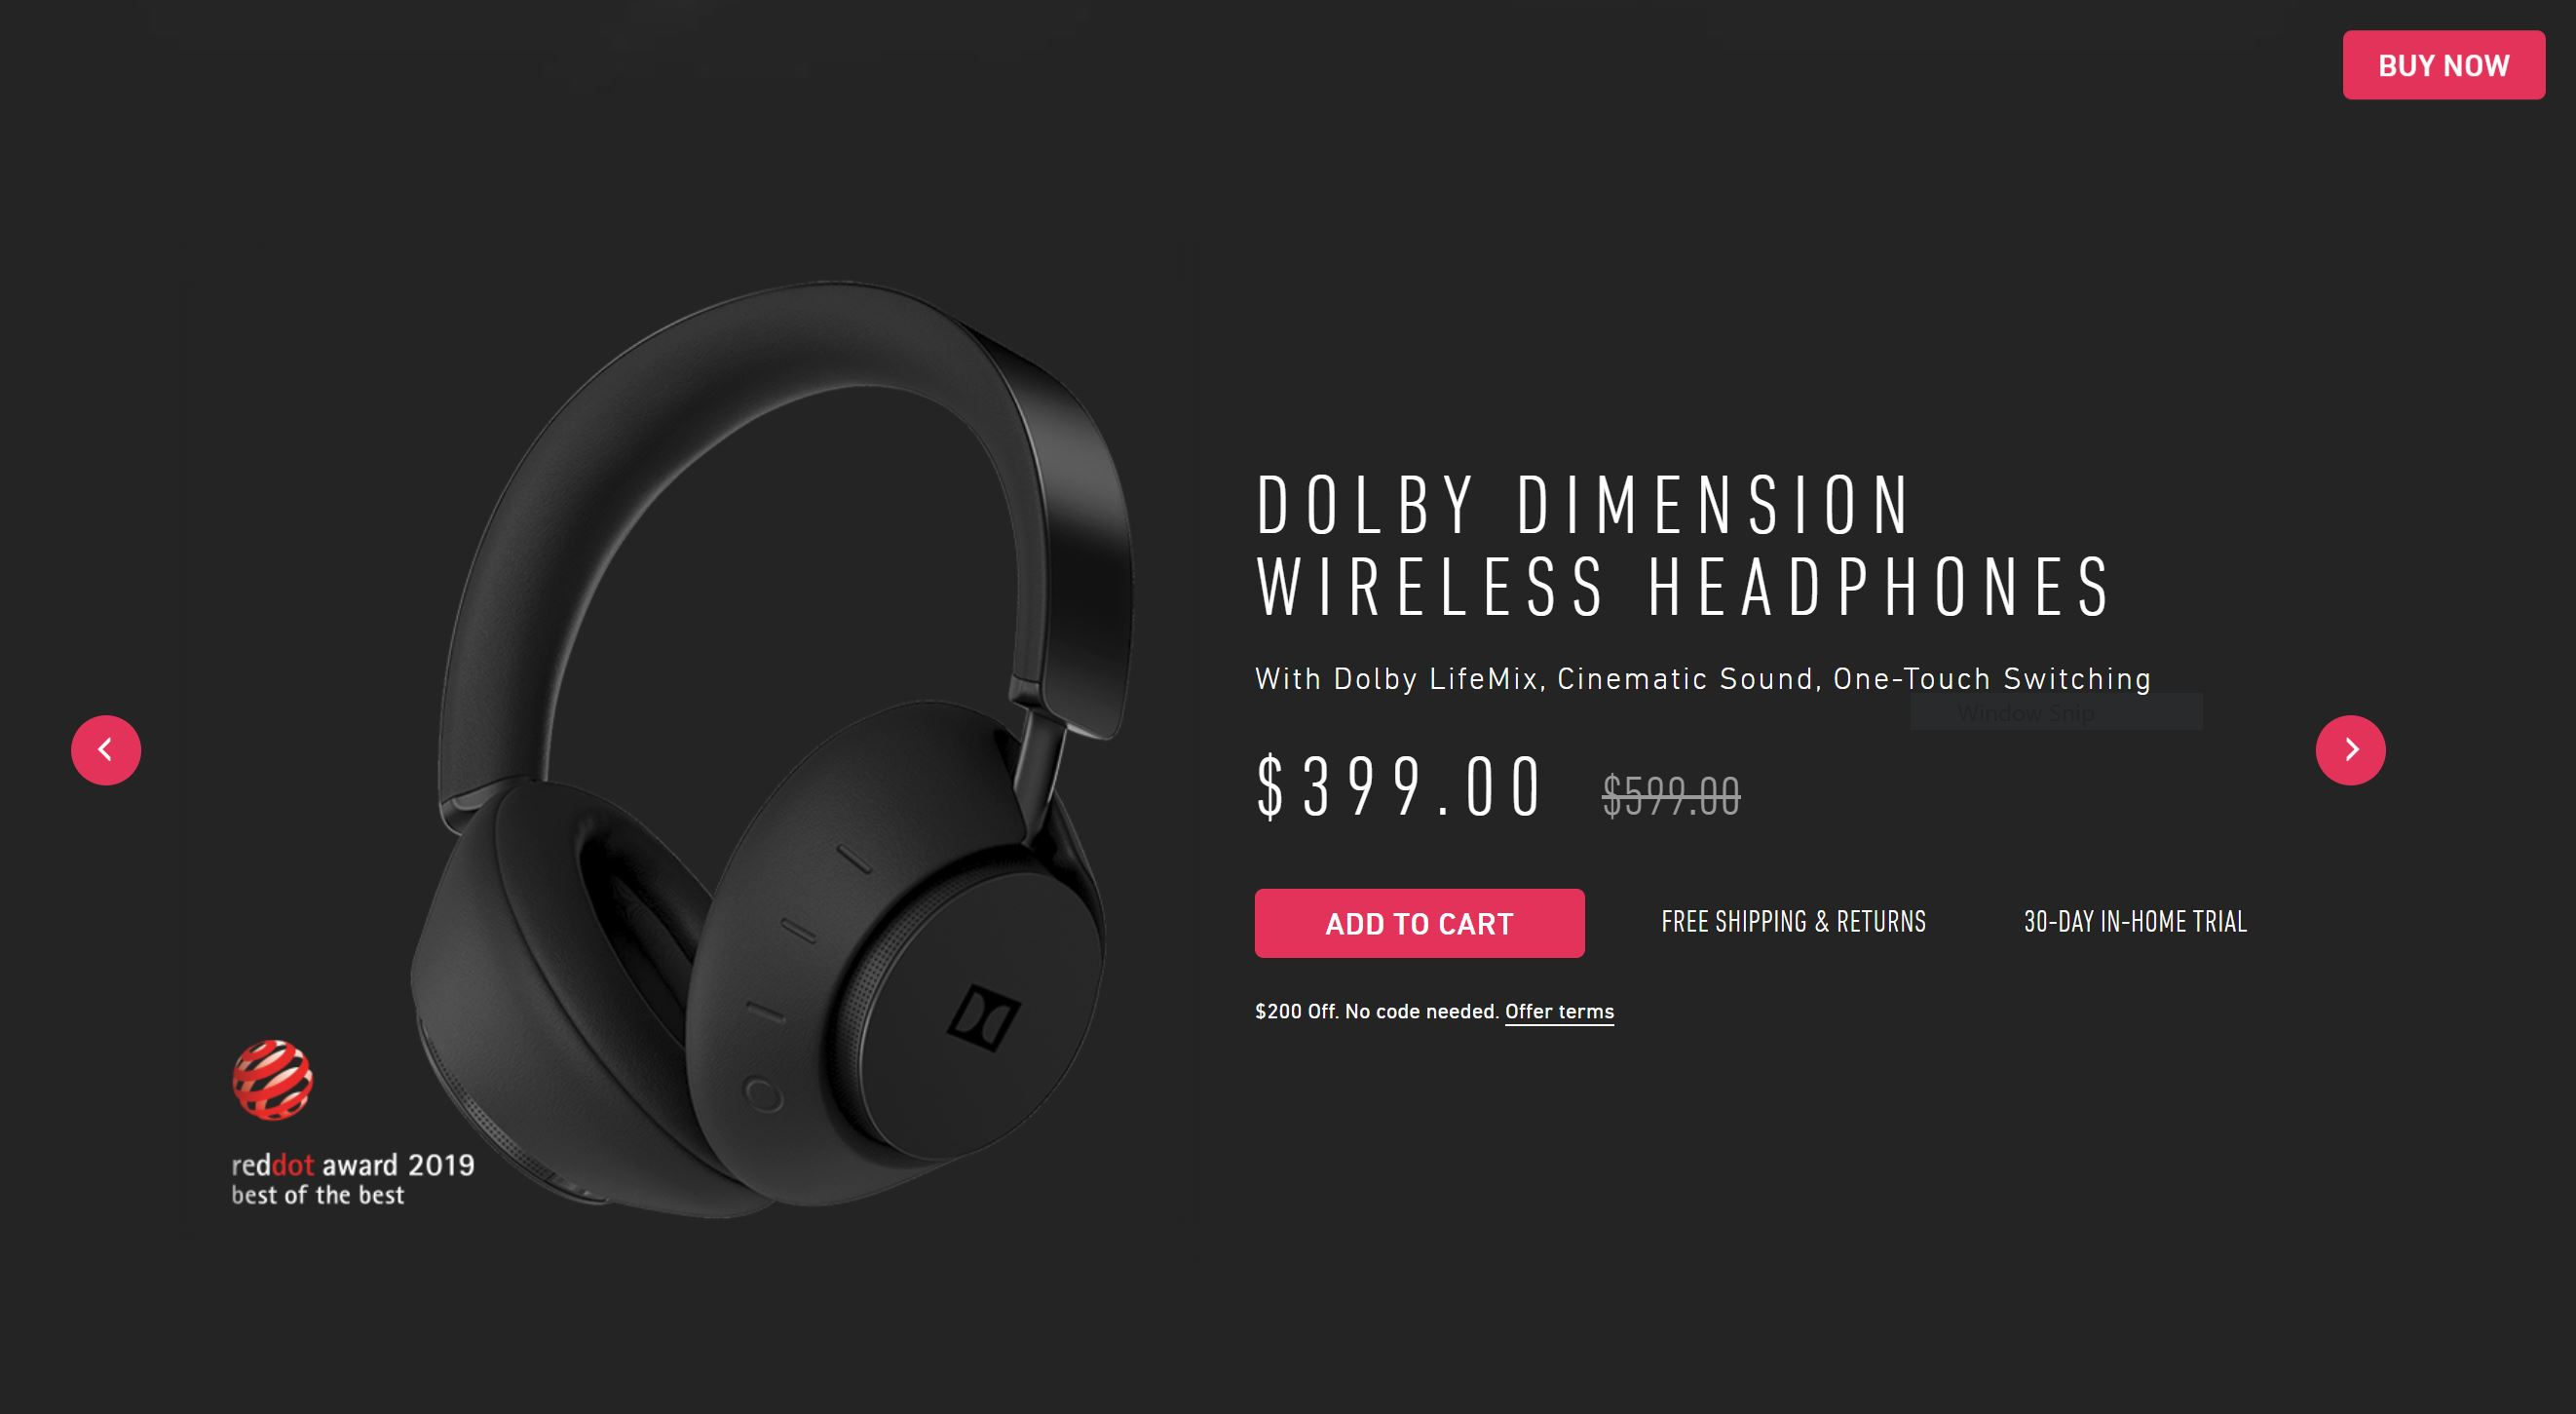 Grab a pair of wireless, noise-canceling Dolby Dimension headphones